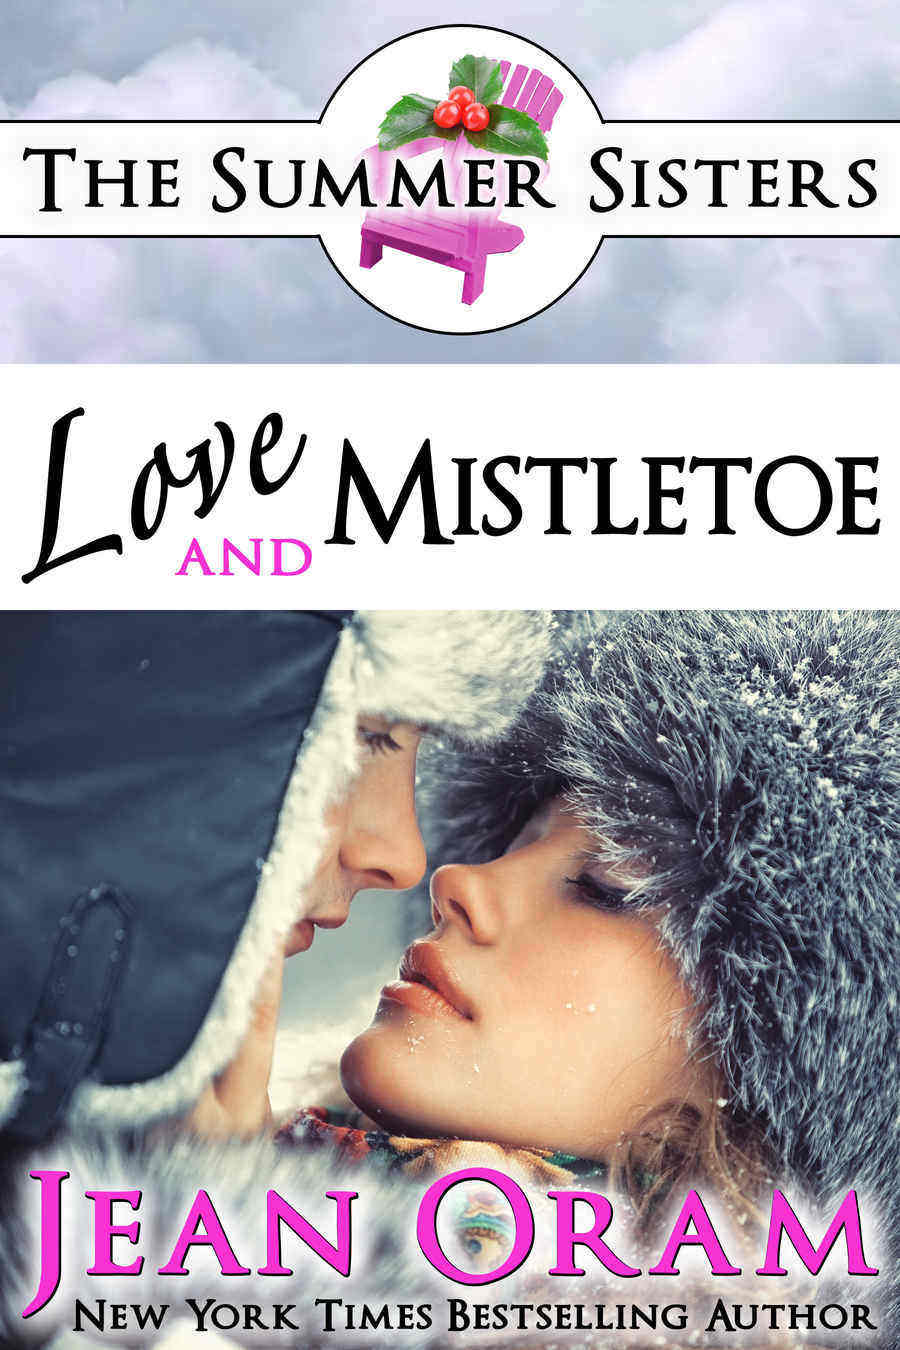 Love and Mistletoe by Jean Oram book 5 in The Summer Sisters series